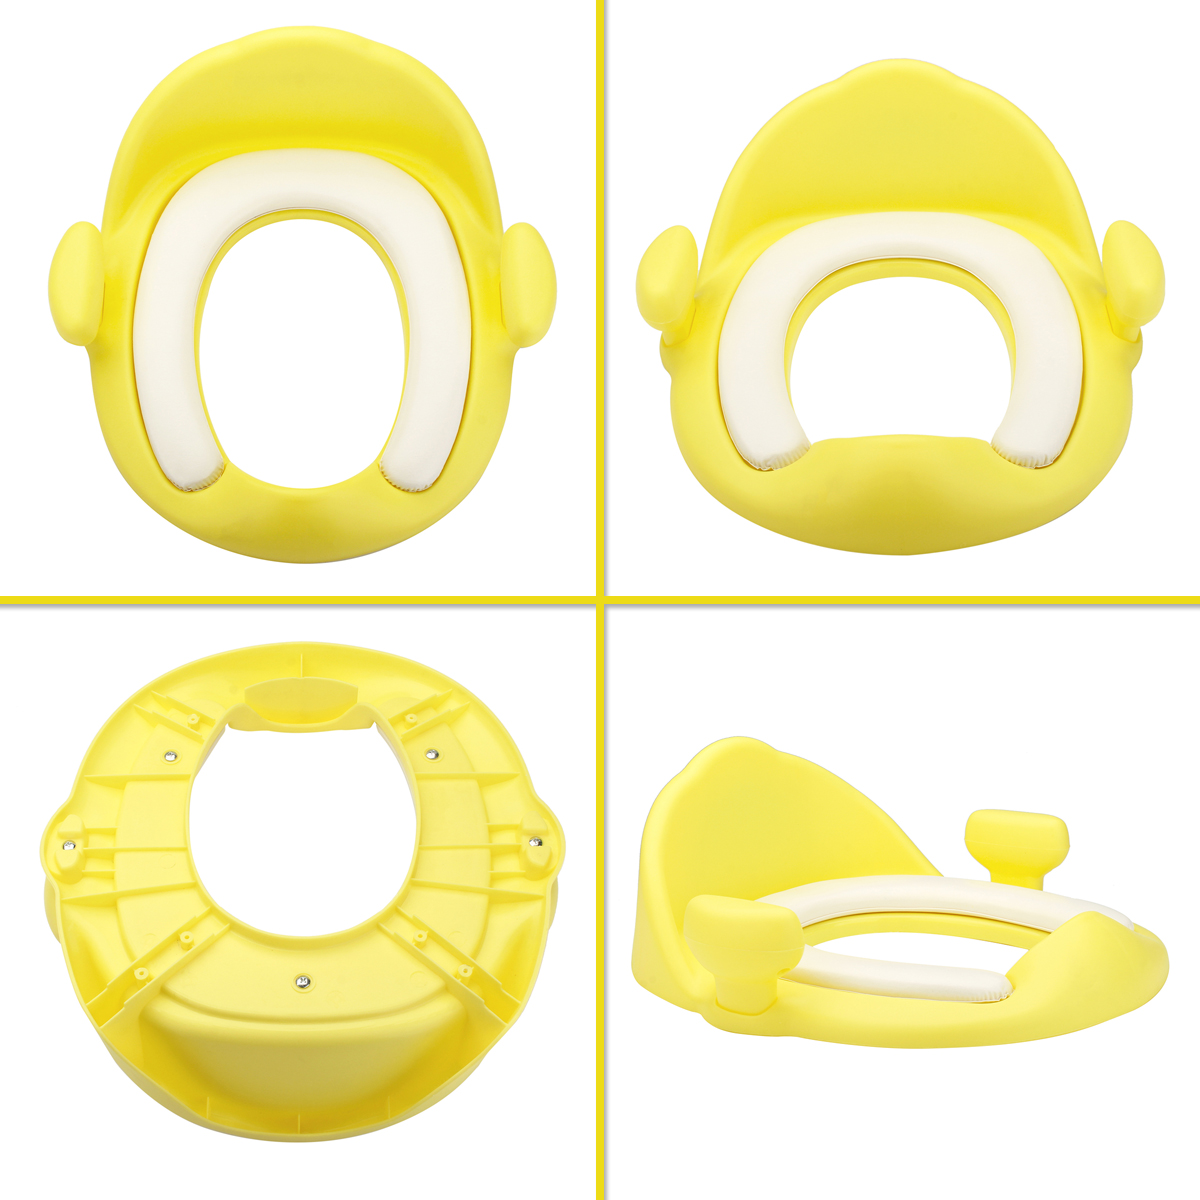 Baby Soft Cushion Toilet Seat Covers Toddler Potty Training Seat Cush With Safe Handle Baby Potties